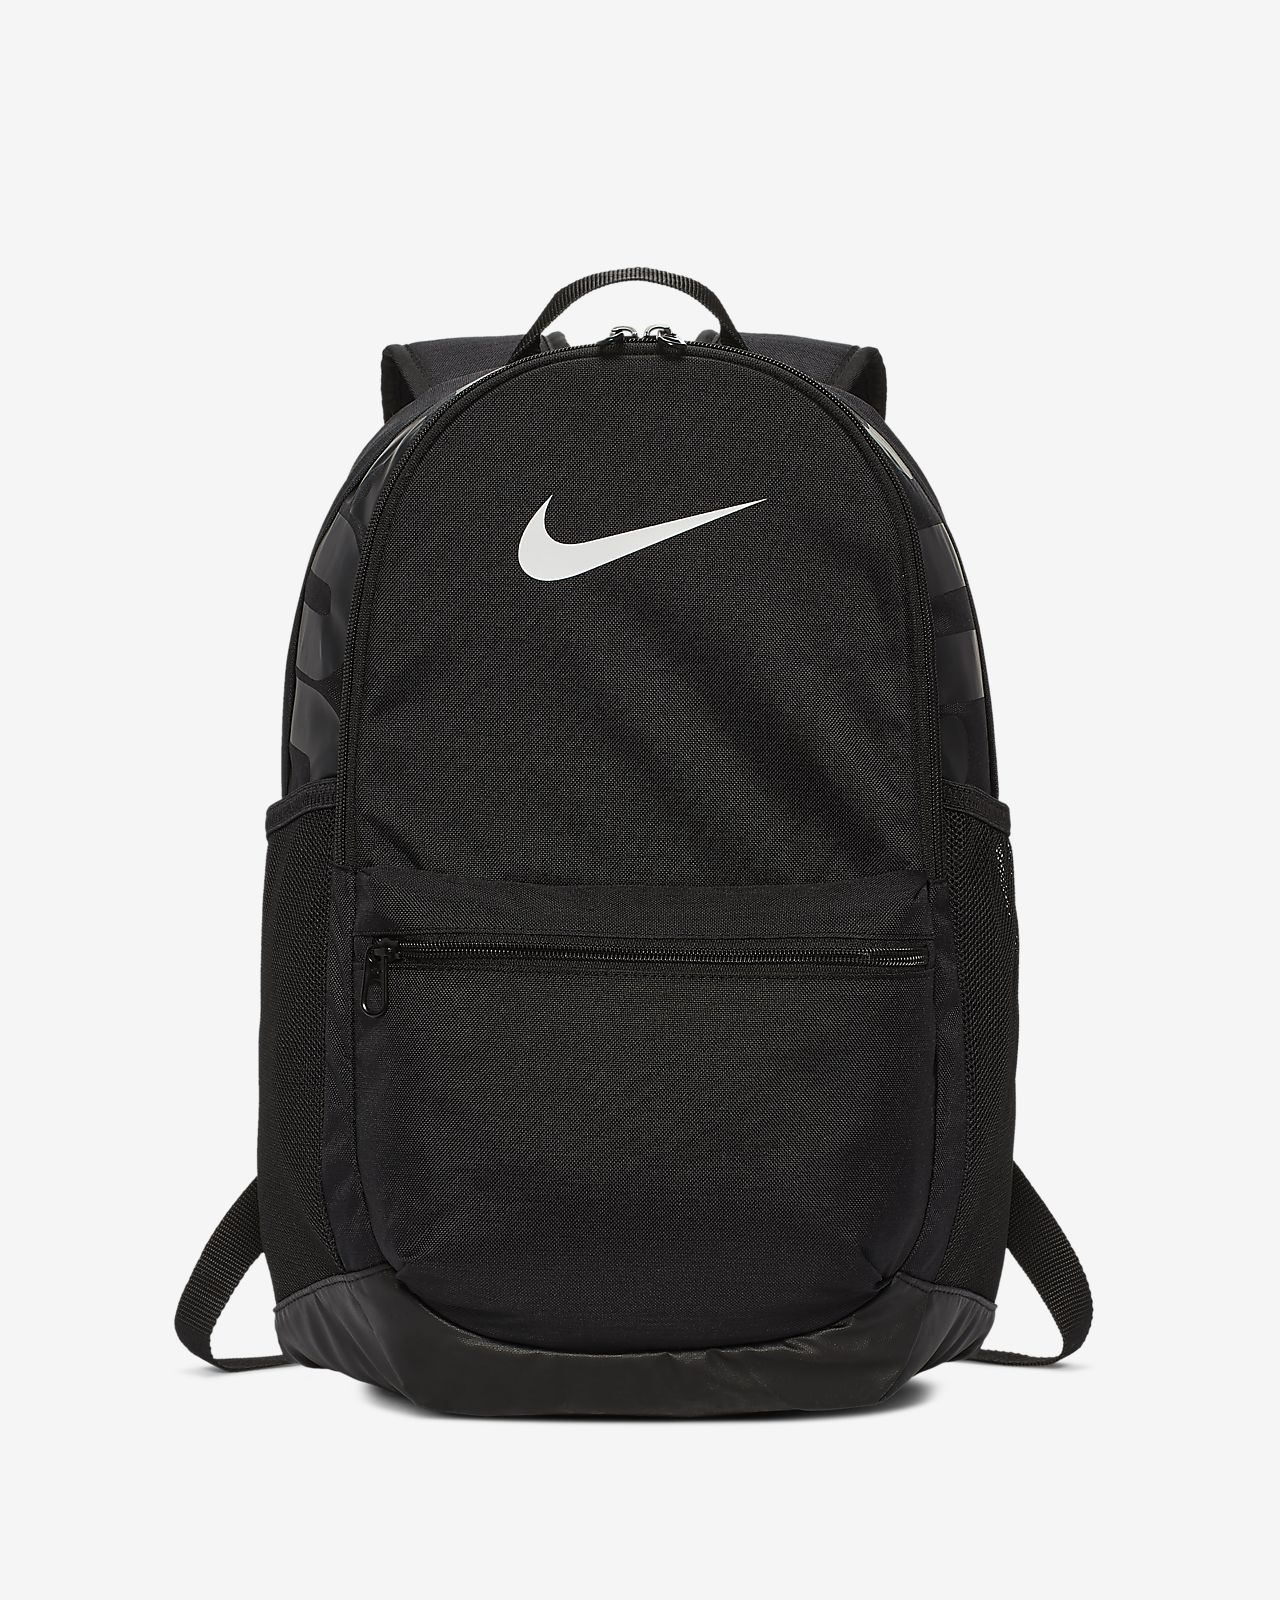 7e5b07c56ea8 Nike Brasilia (Medium) Training Backpack. Nike.com